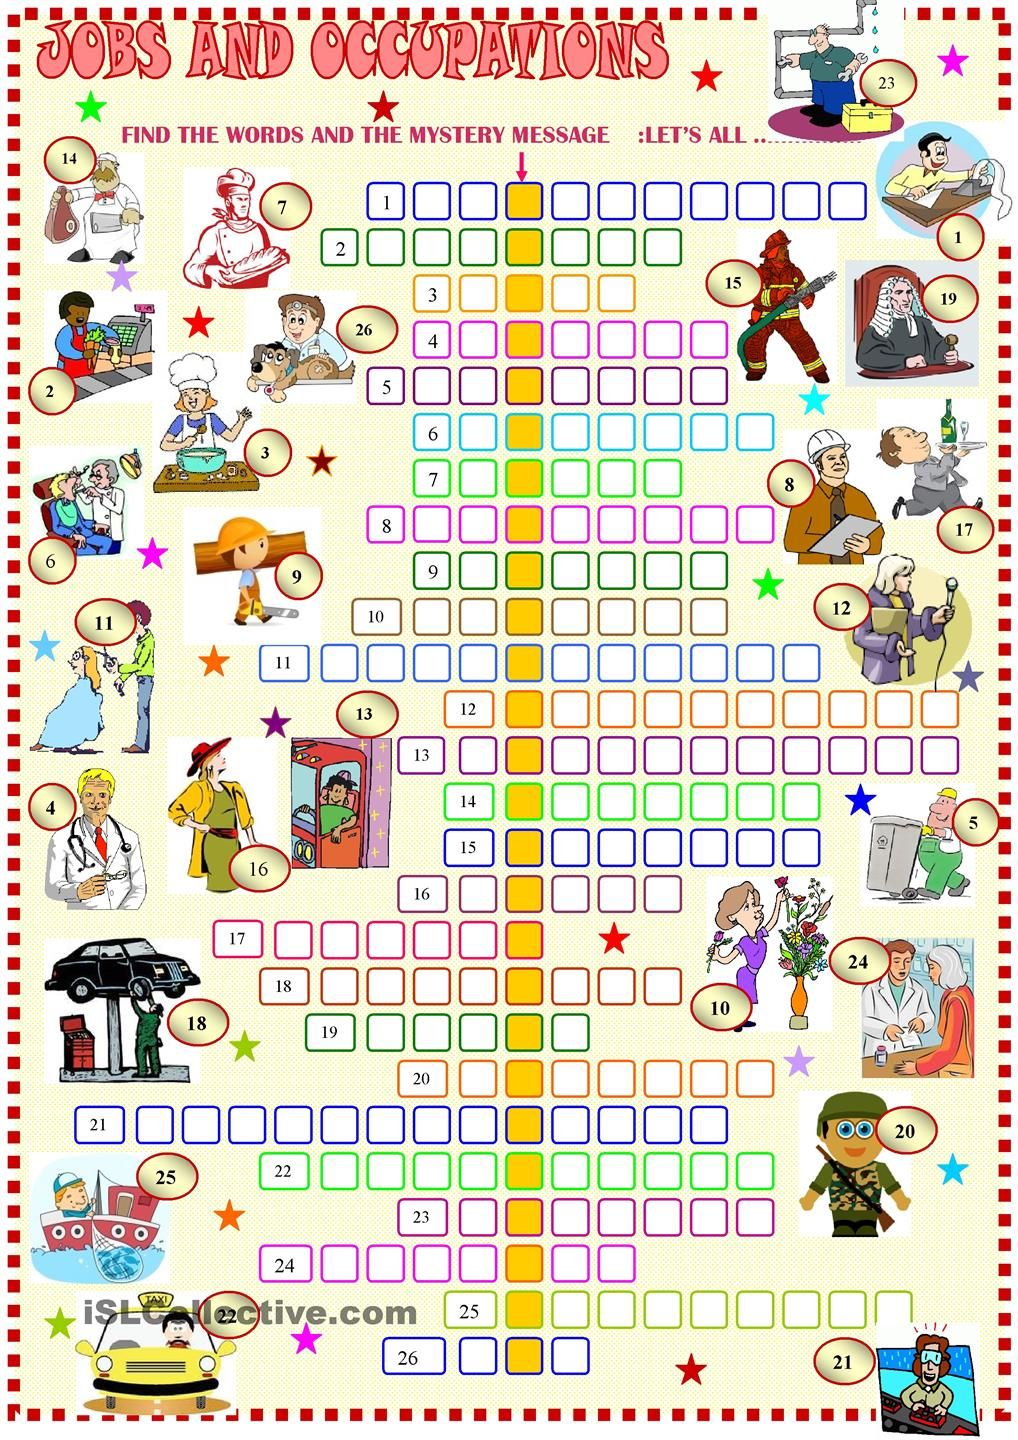 worksheet Grammar Puzzle Worksheets jobs crosswords esl ideas pinterest english worksheets and have fun with irregular verbs key of the crossword included worksheet free printable made by teachers